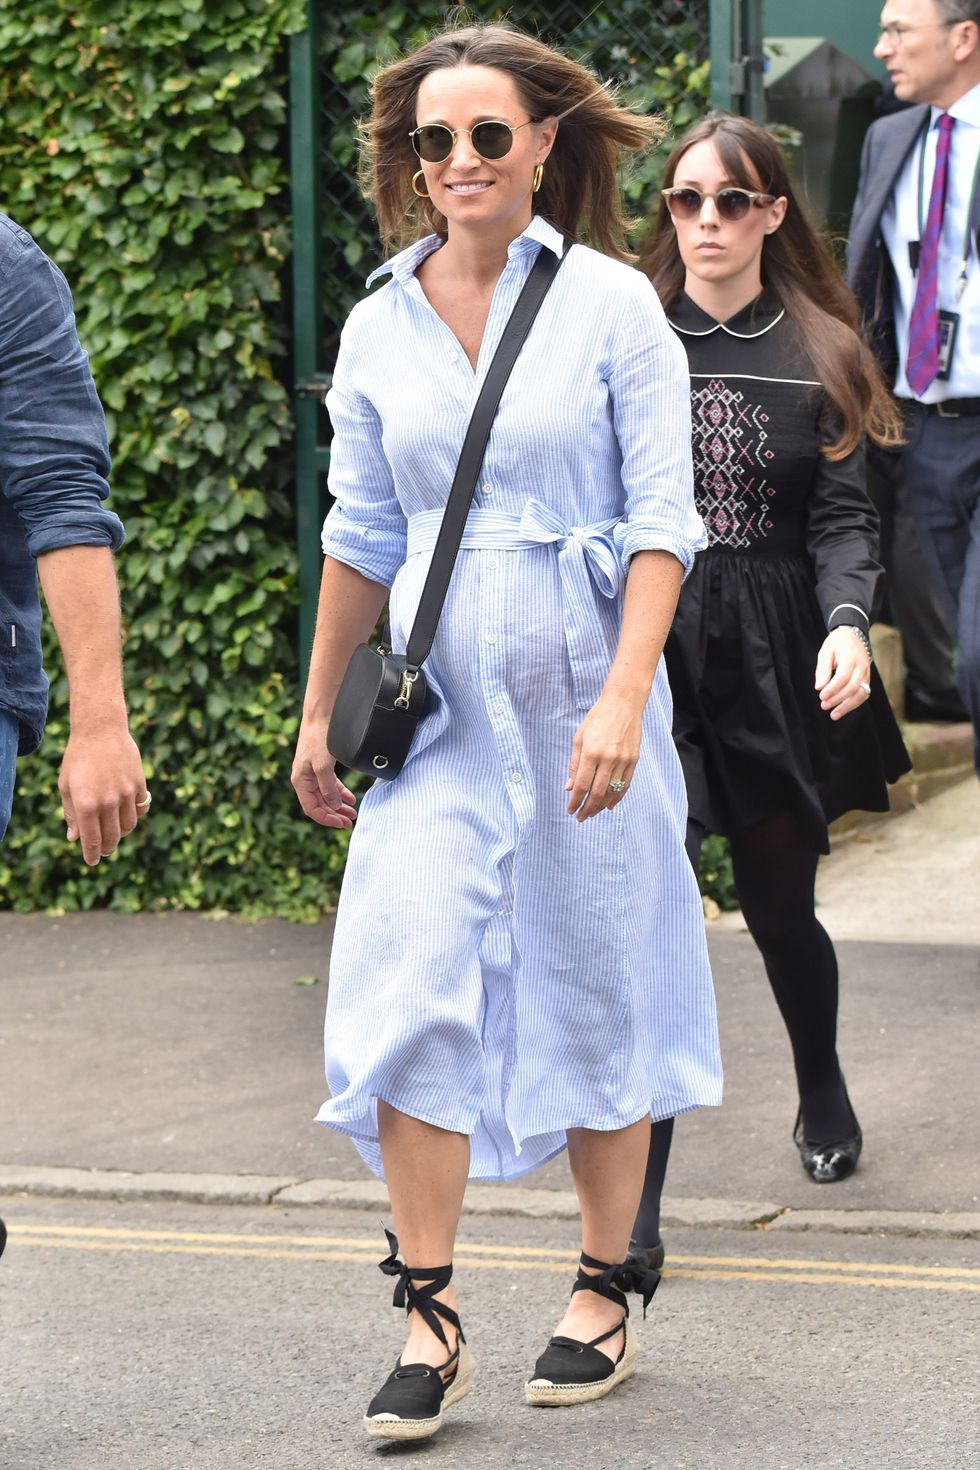 e8f9ad26279b7 Pippa Middleton's Best Maternity Outfits - Pippa Middleton Post Baby Style